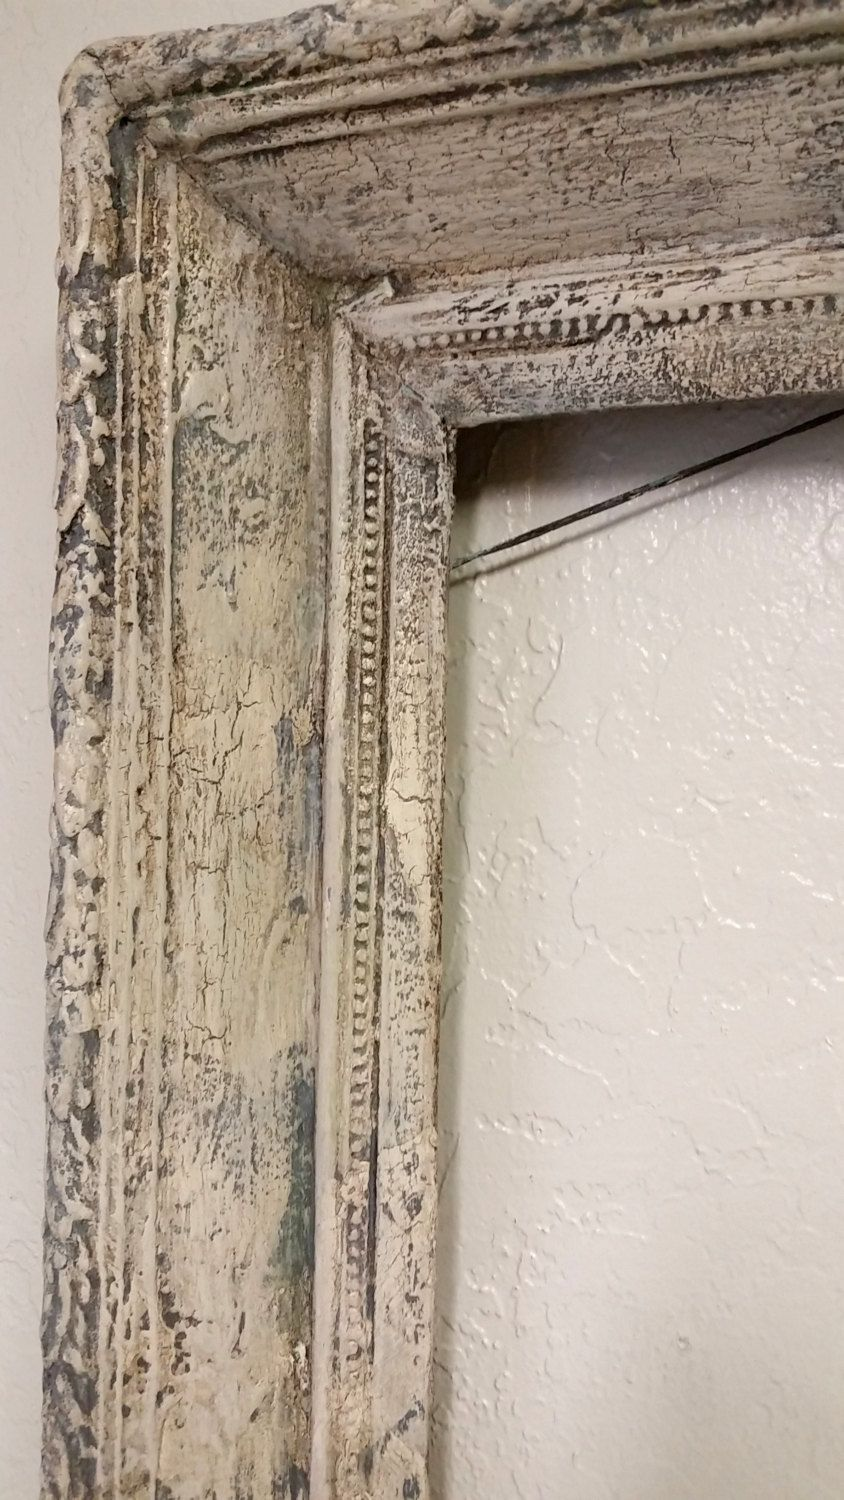 Extra large antique thick picture frame 3 12 inches deep solid extra large antique thick picture frame 3 12 inches deep solid wood jeuxipadfo Images